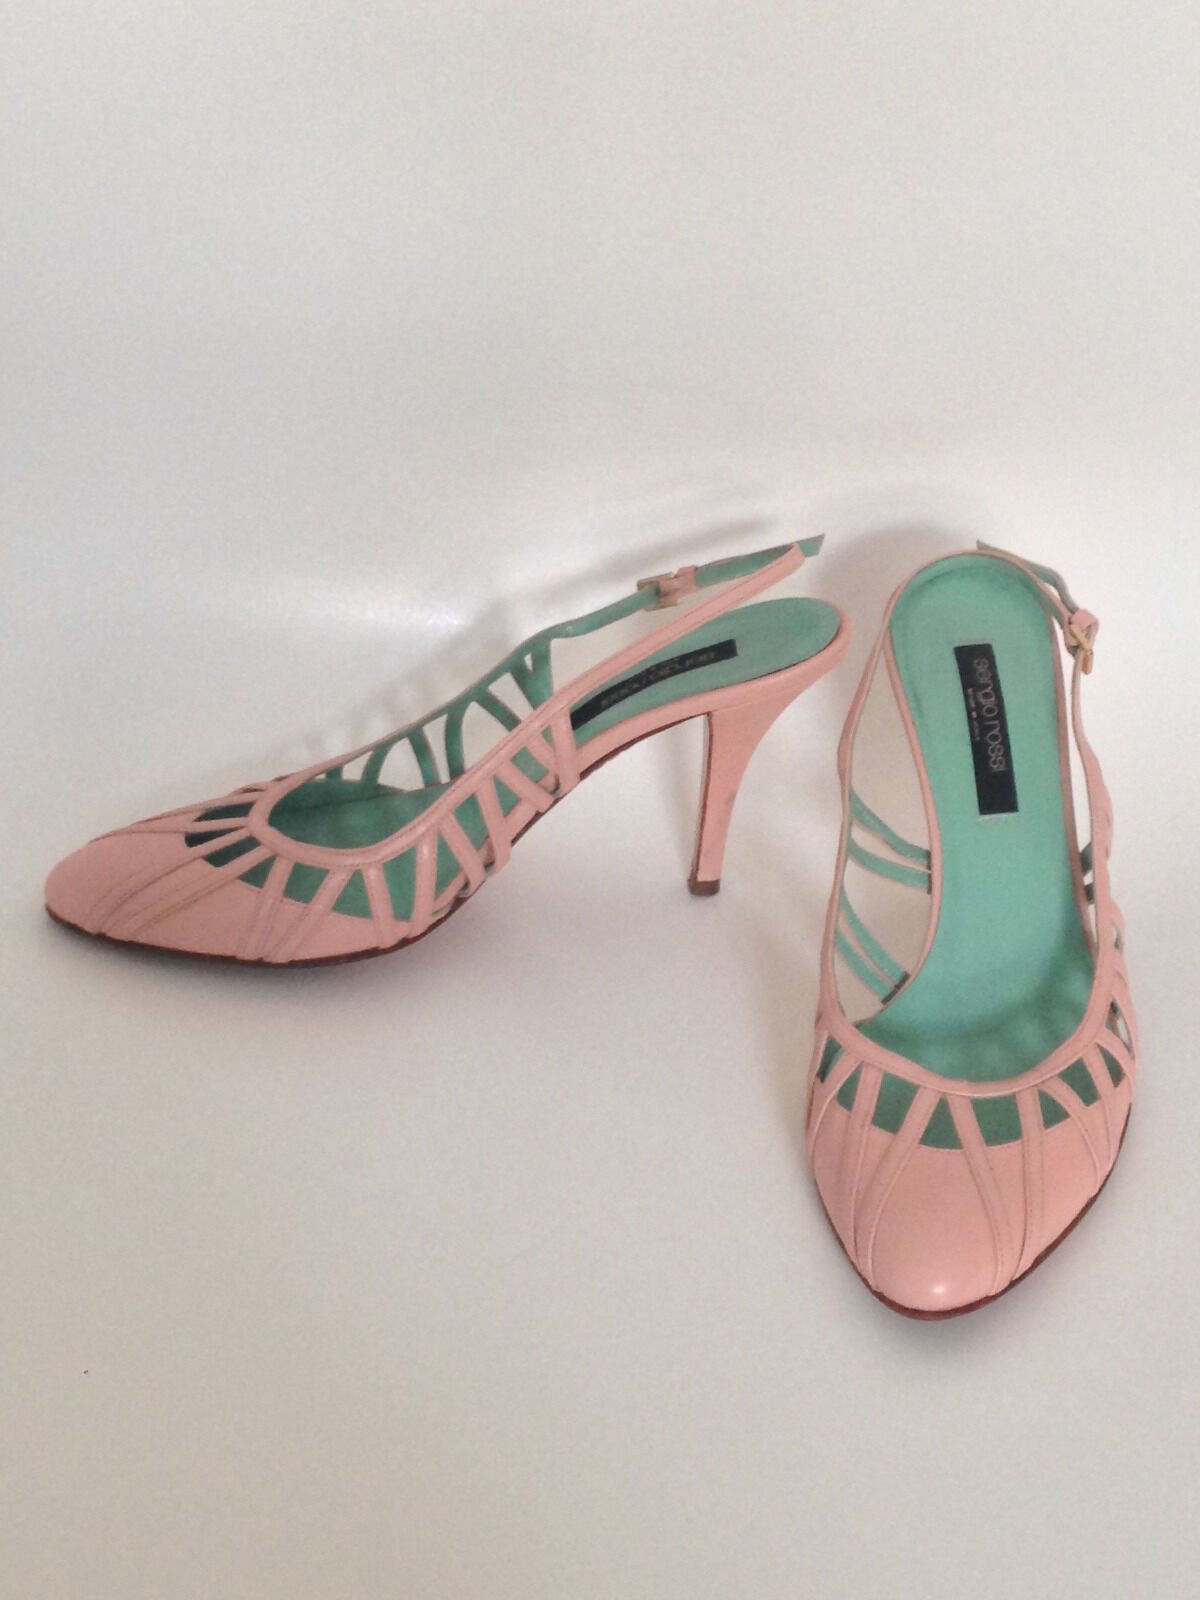 SERGIO ROSSI ITALY Heels Slingback Stiletto Heels ITALY Größe 36.5 Pink Leder 40s style 045bc0